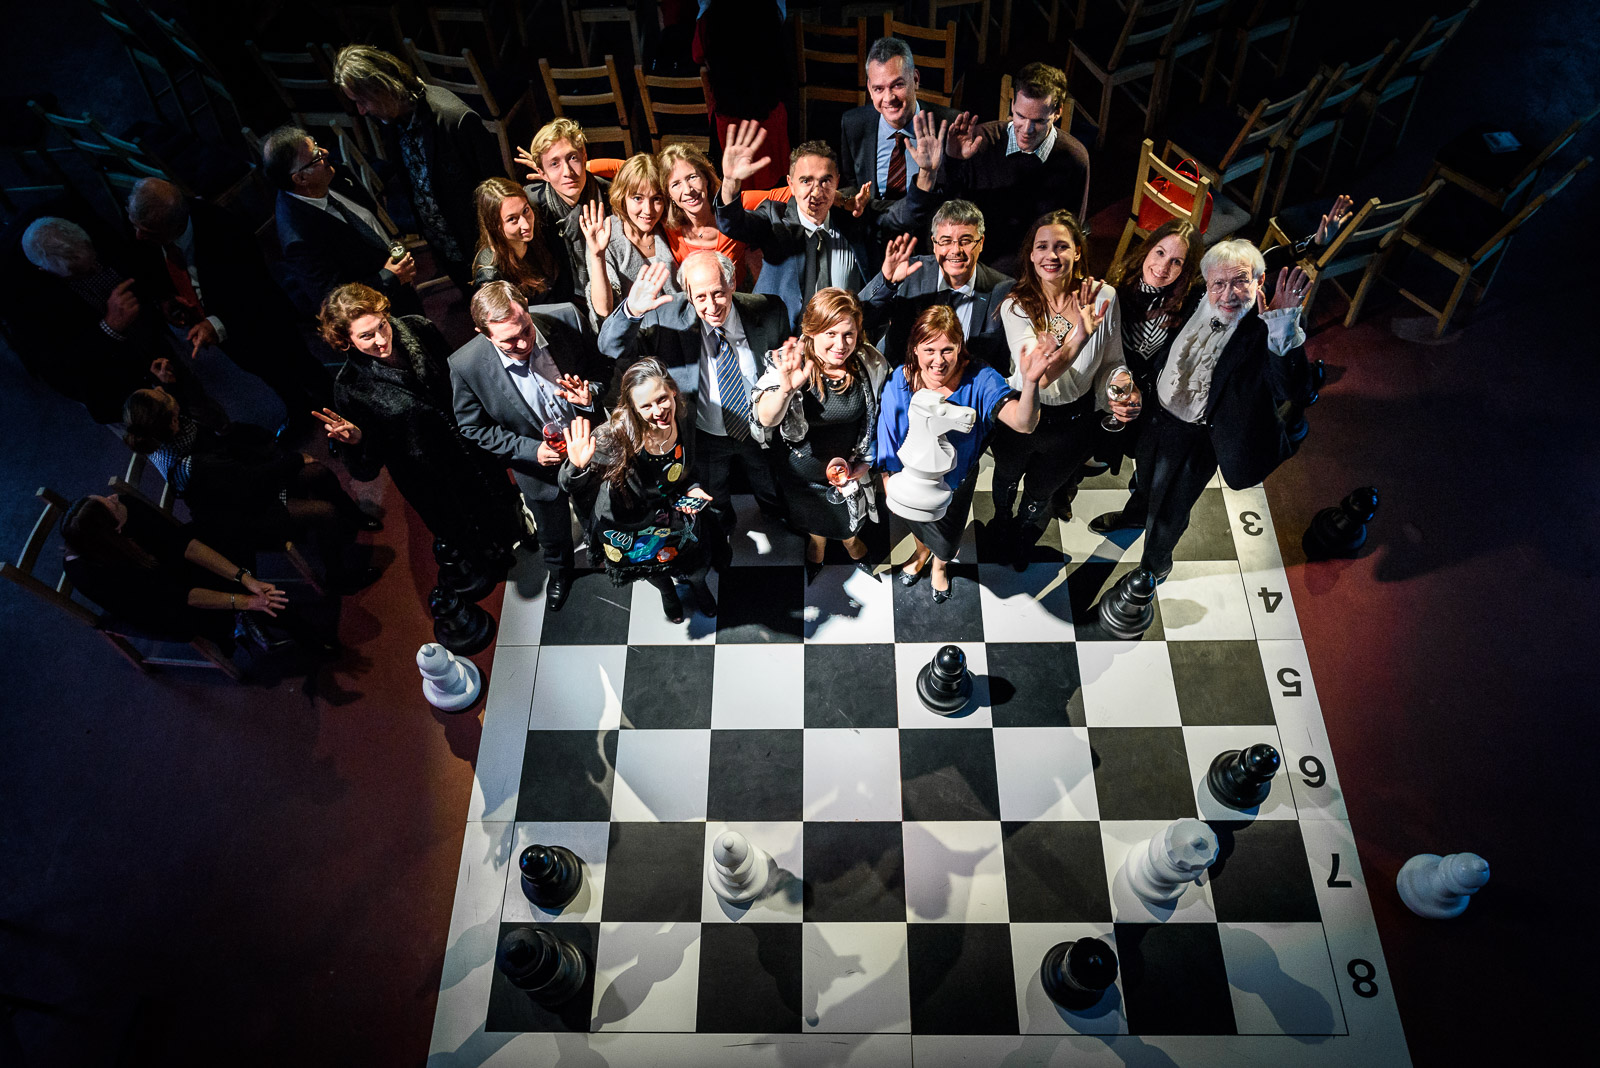 Group photo on large chess board